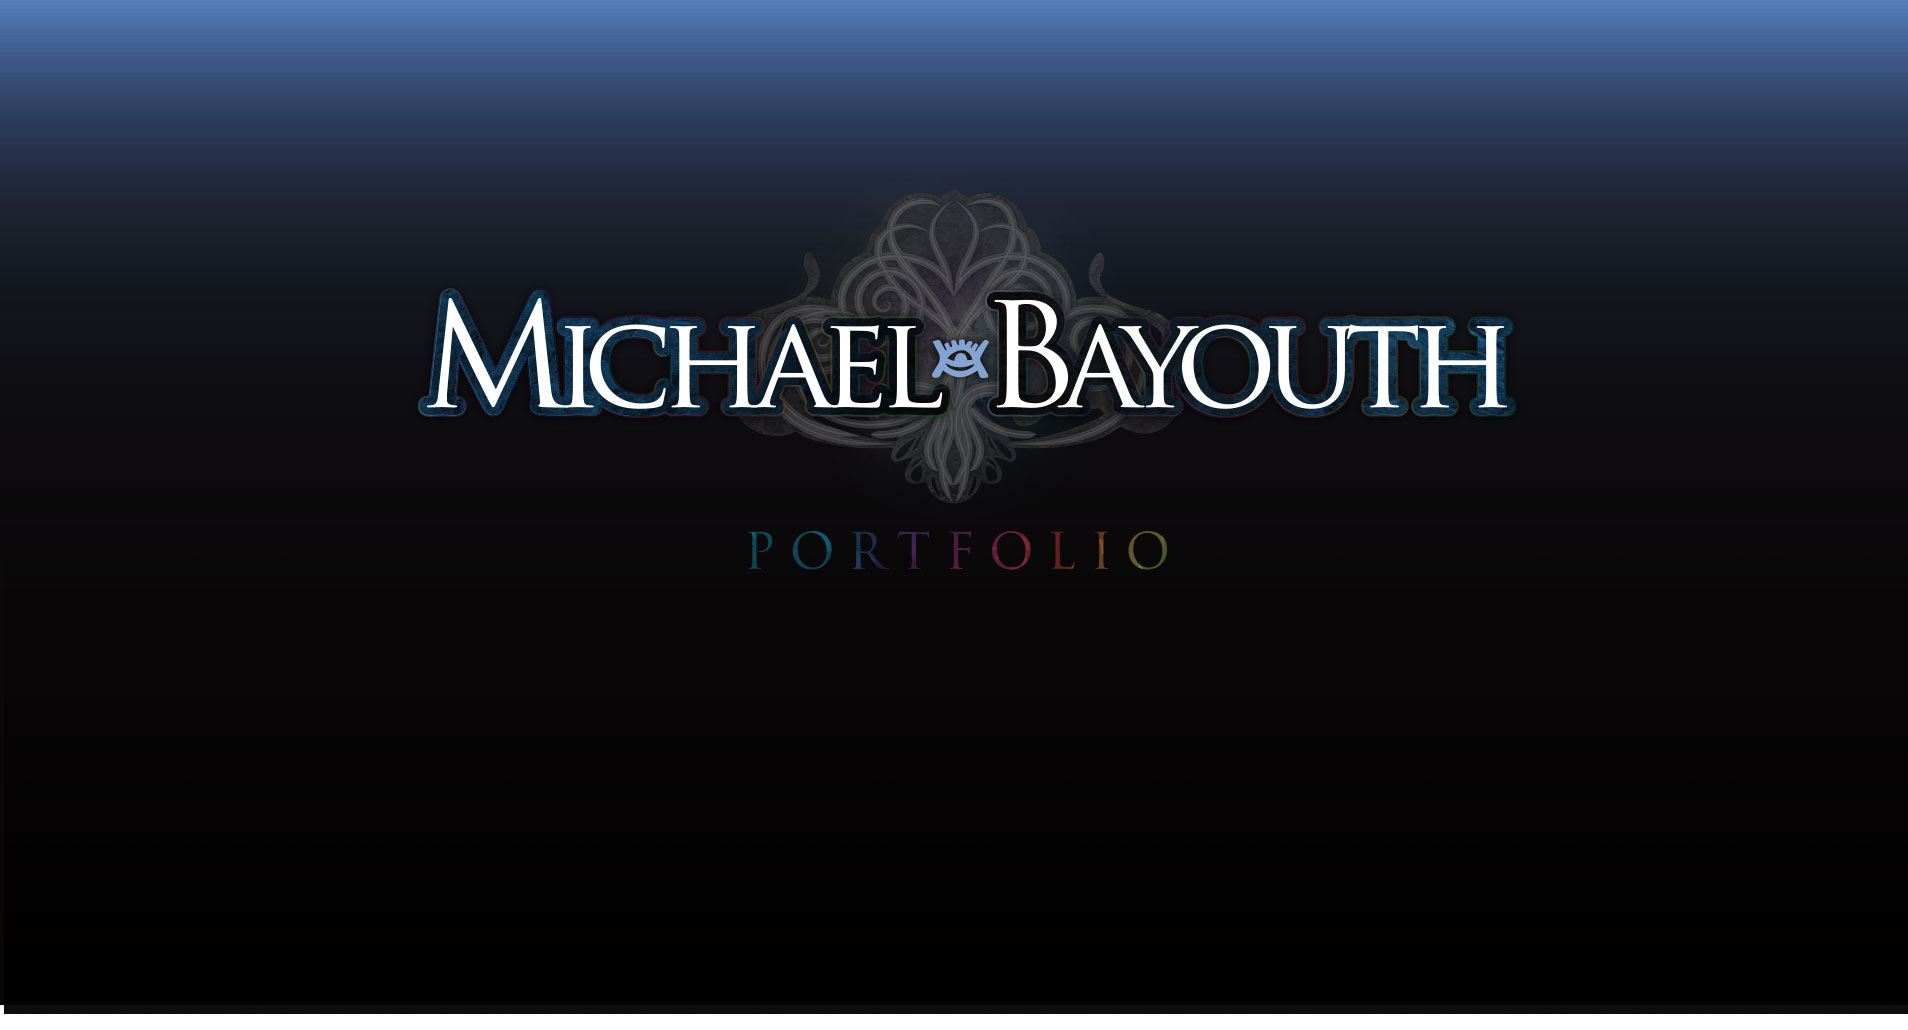 Bayouth Productions